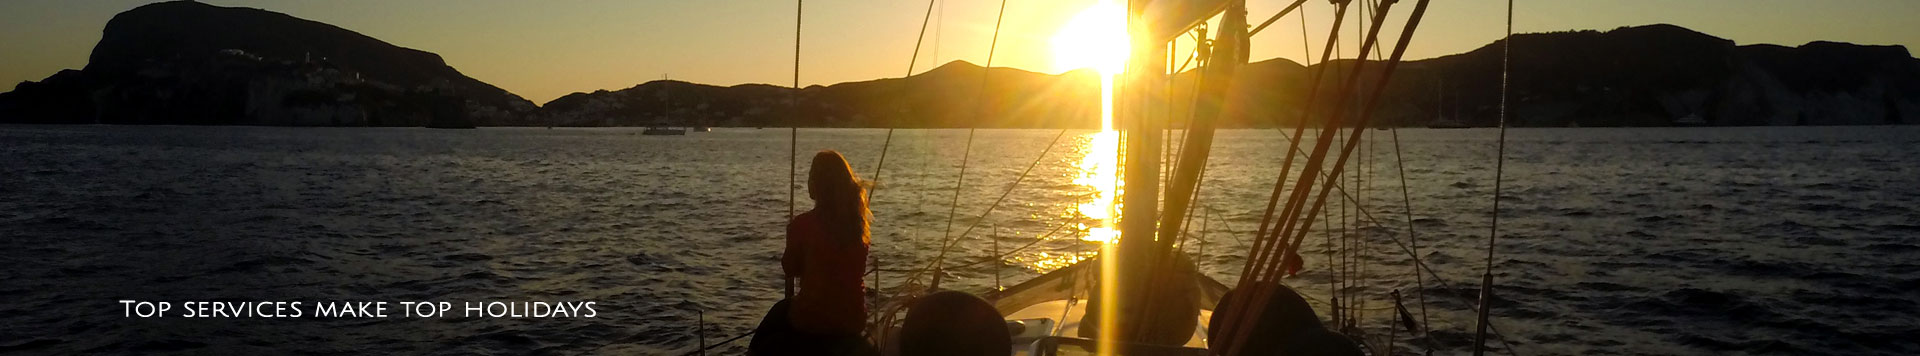 sailing holidays - mediterranean sea